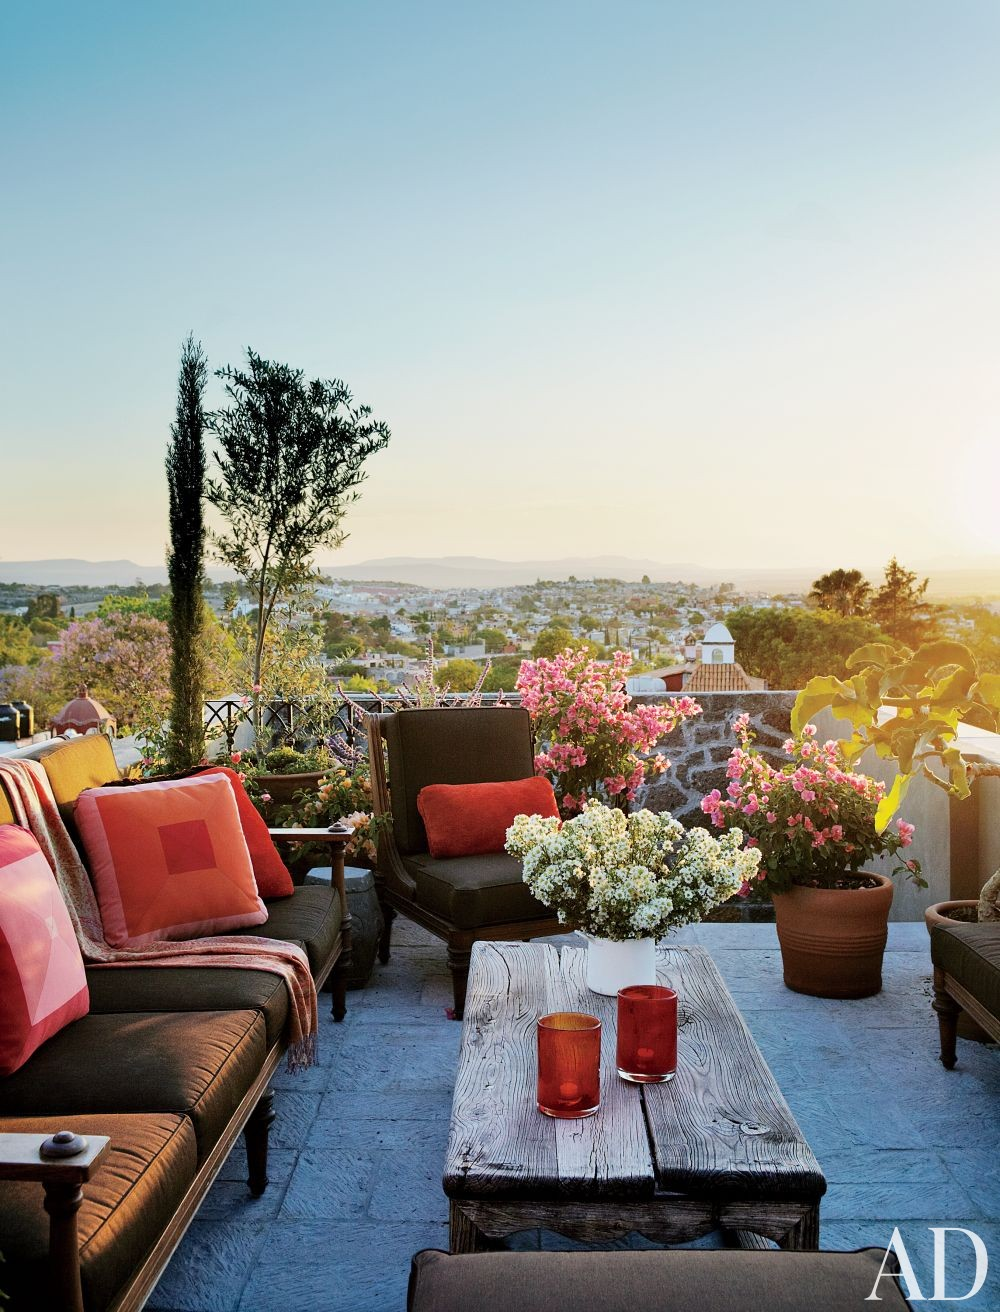 Exotic Outdoor Space by Fisher Weisman in San Miguel de Allende, Mexico